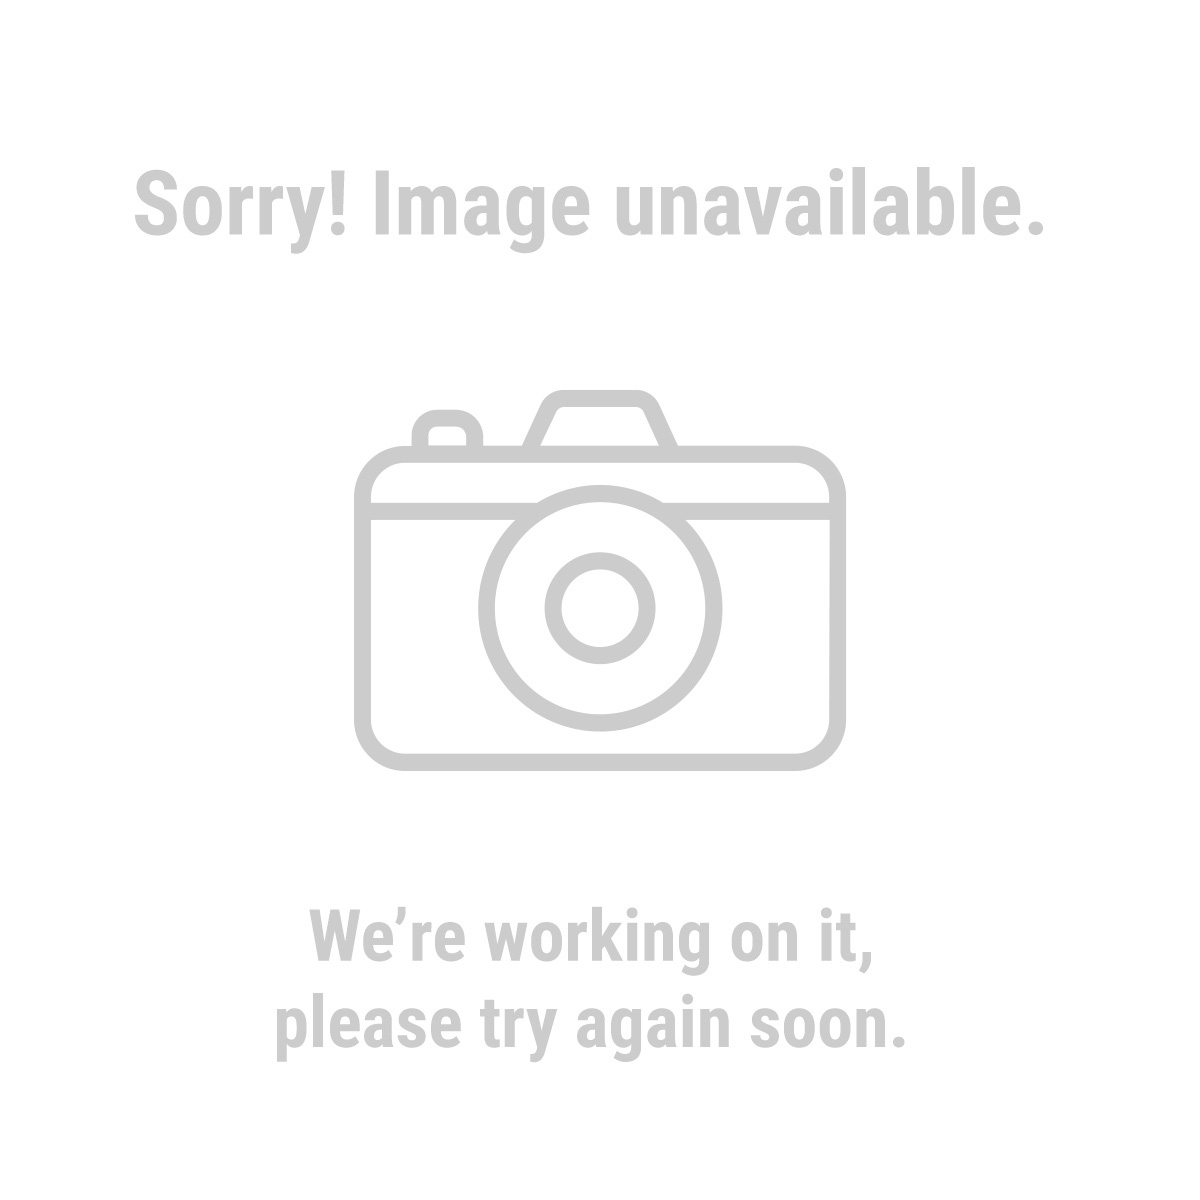 Paint Brush Harbor Freight